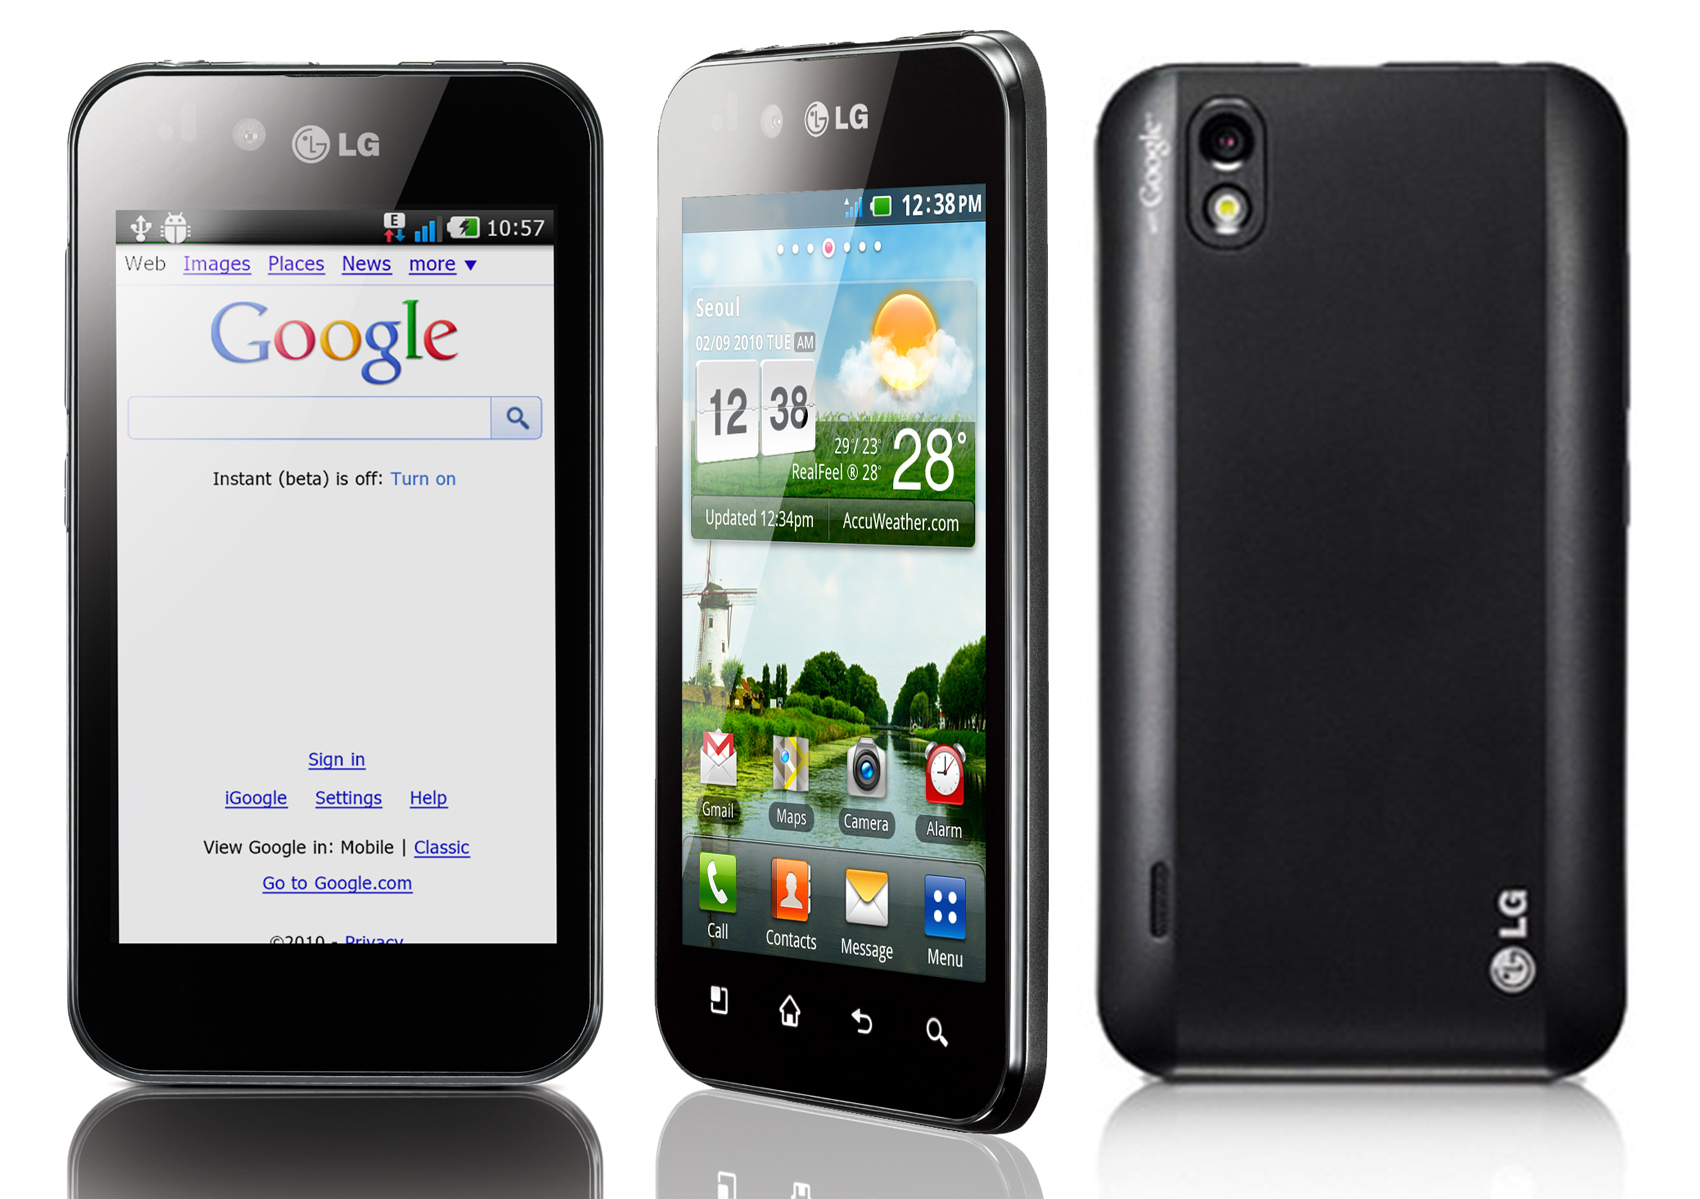 lg-optimus-black-p970.jpg